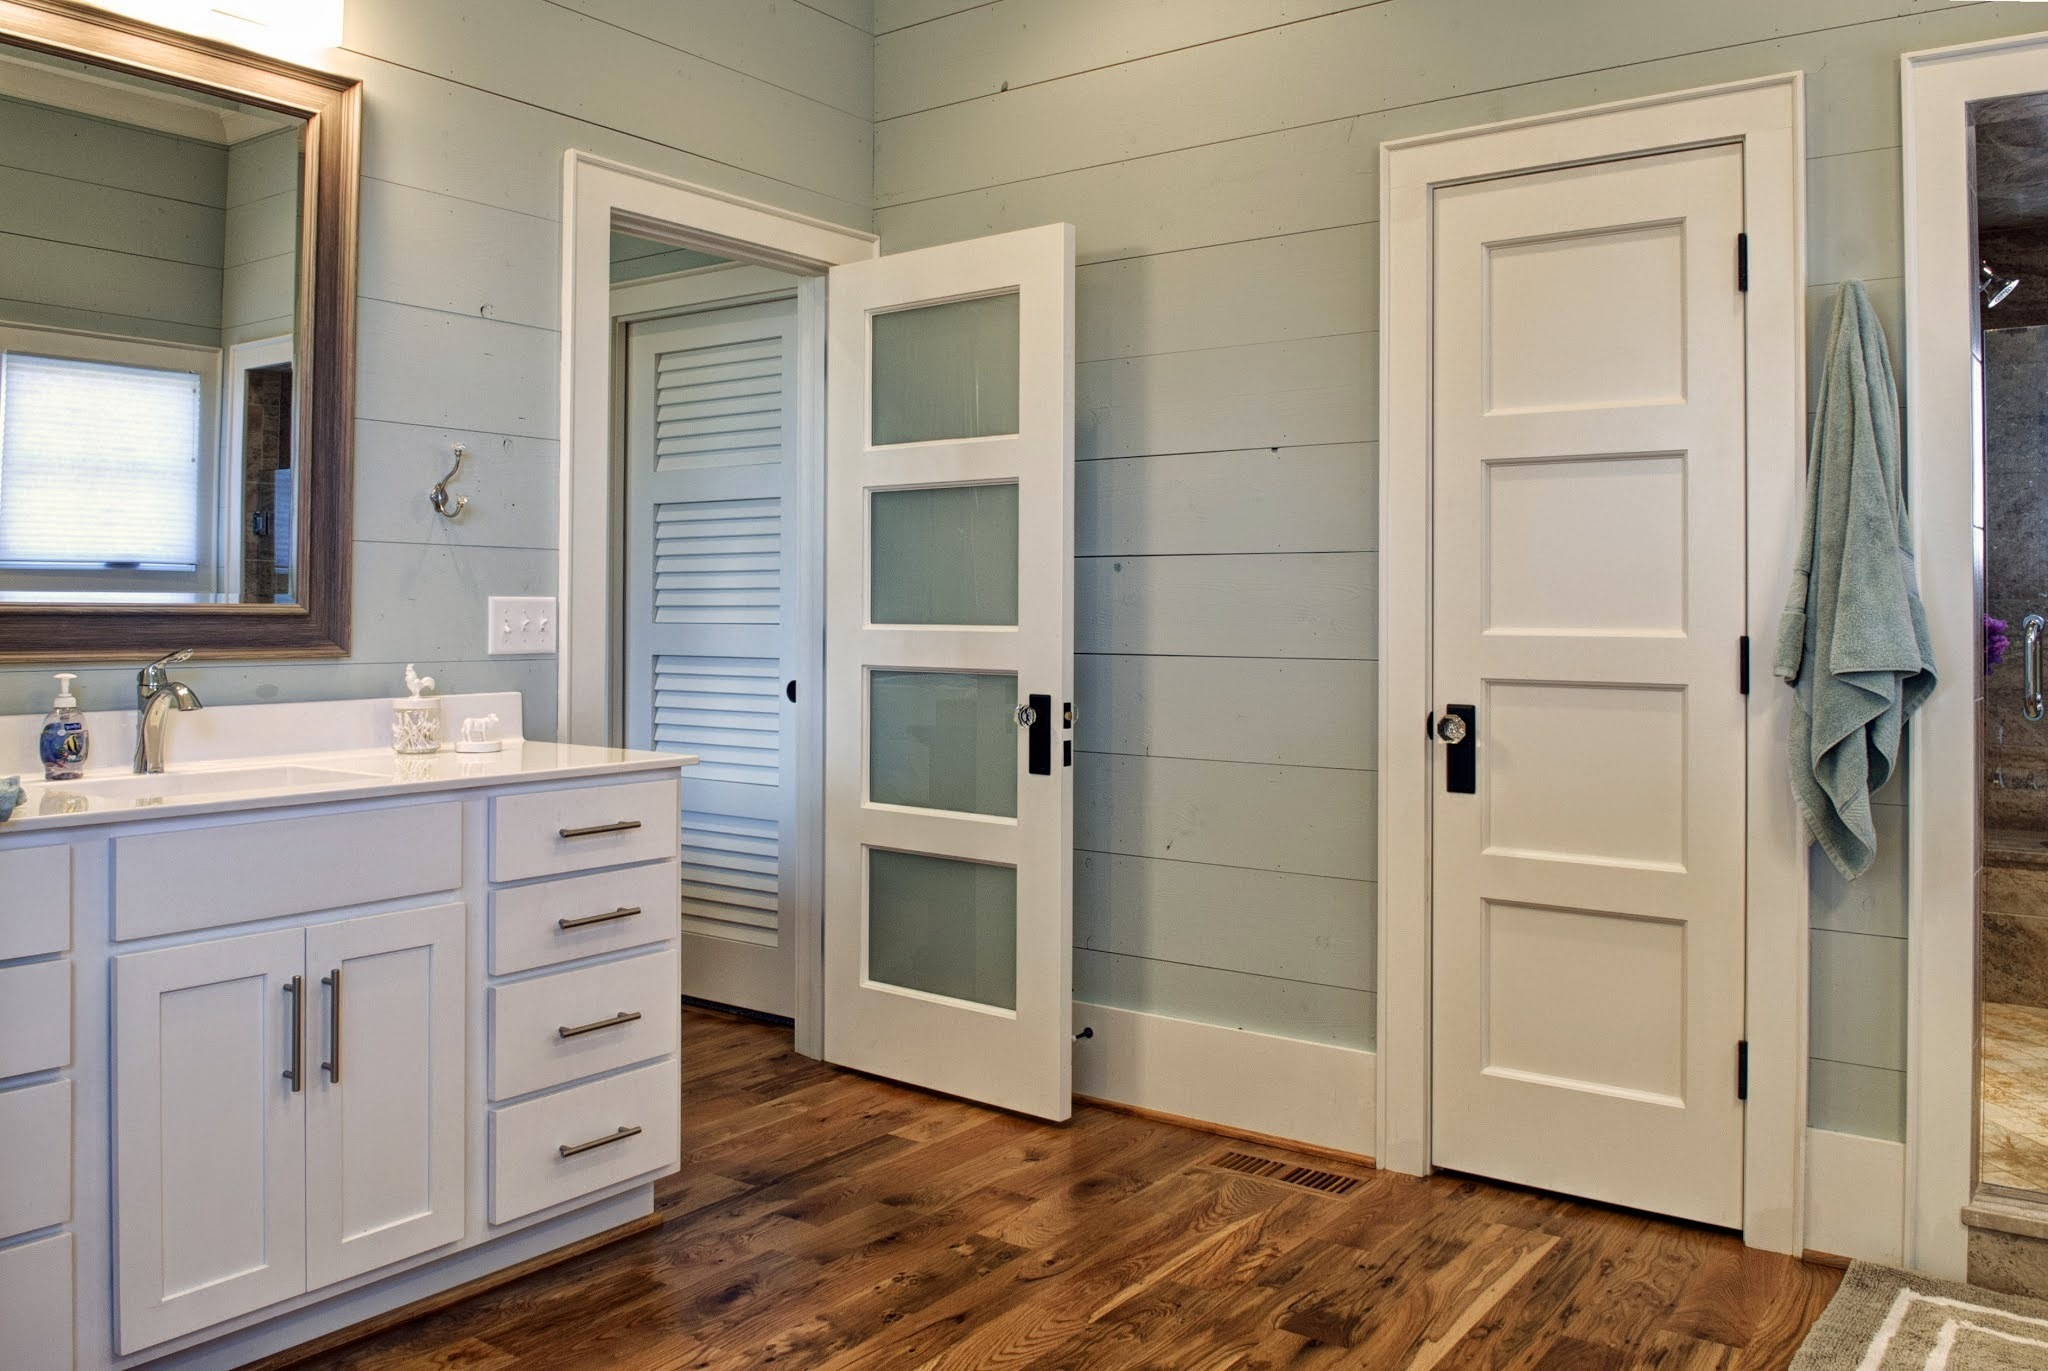 White Interior Doors white interior doors with stained wood trim